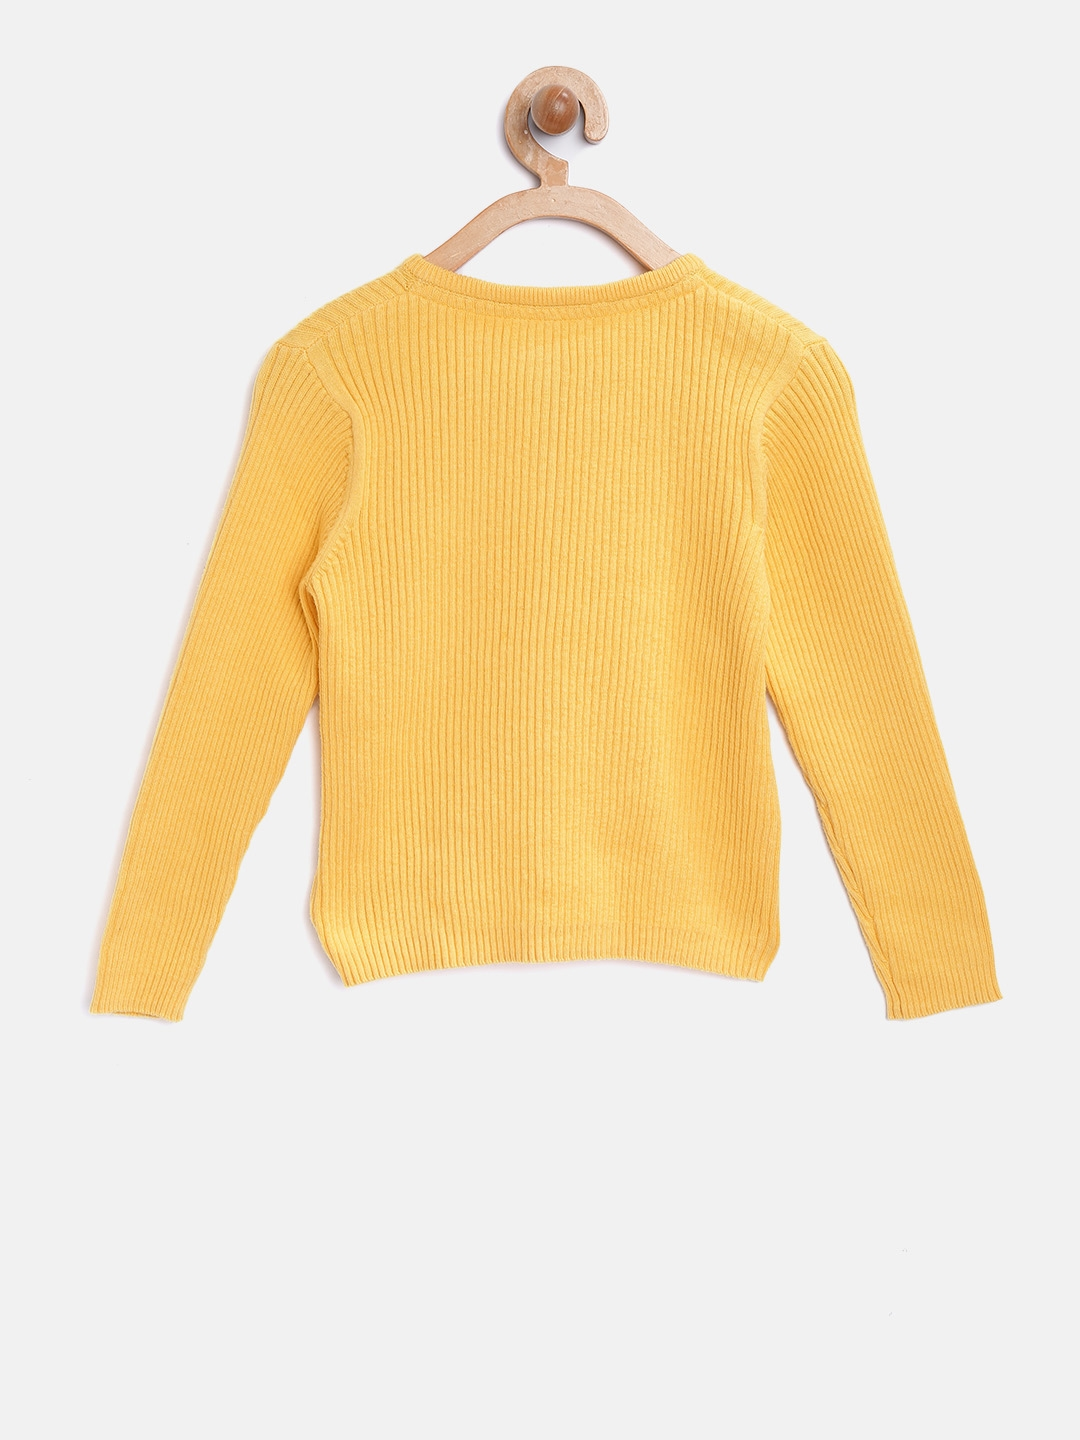 7cf8e9c4c8 Buy Mothercare Girls Yellow Self Striped Cardigan - Sweaters for ...